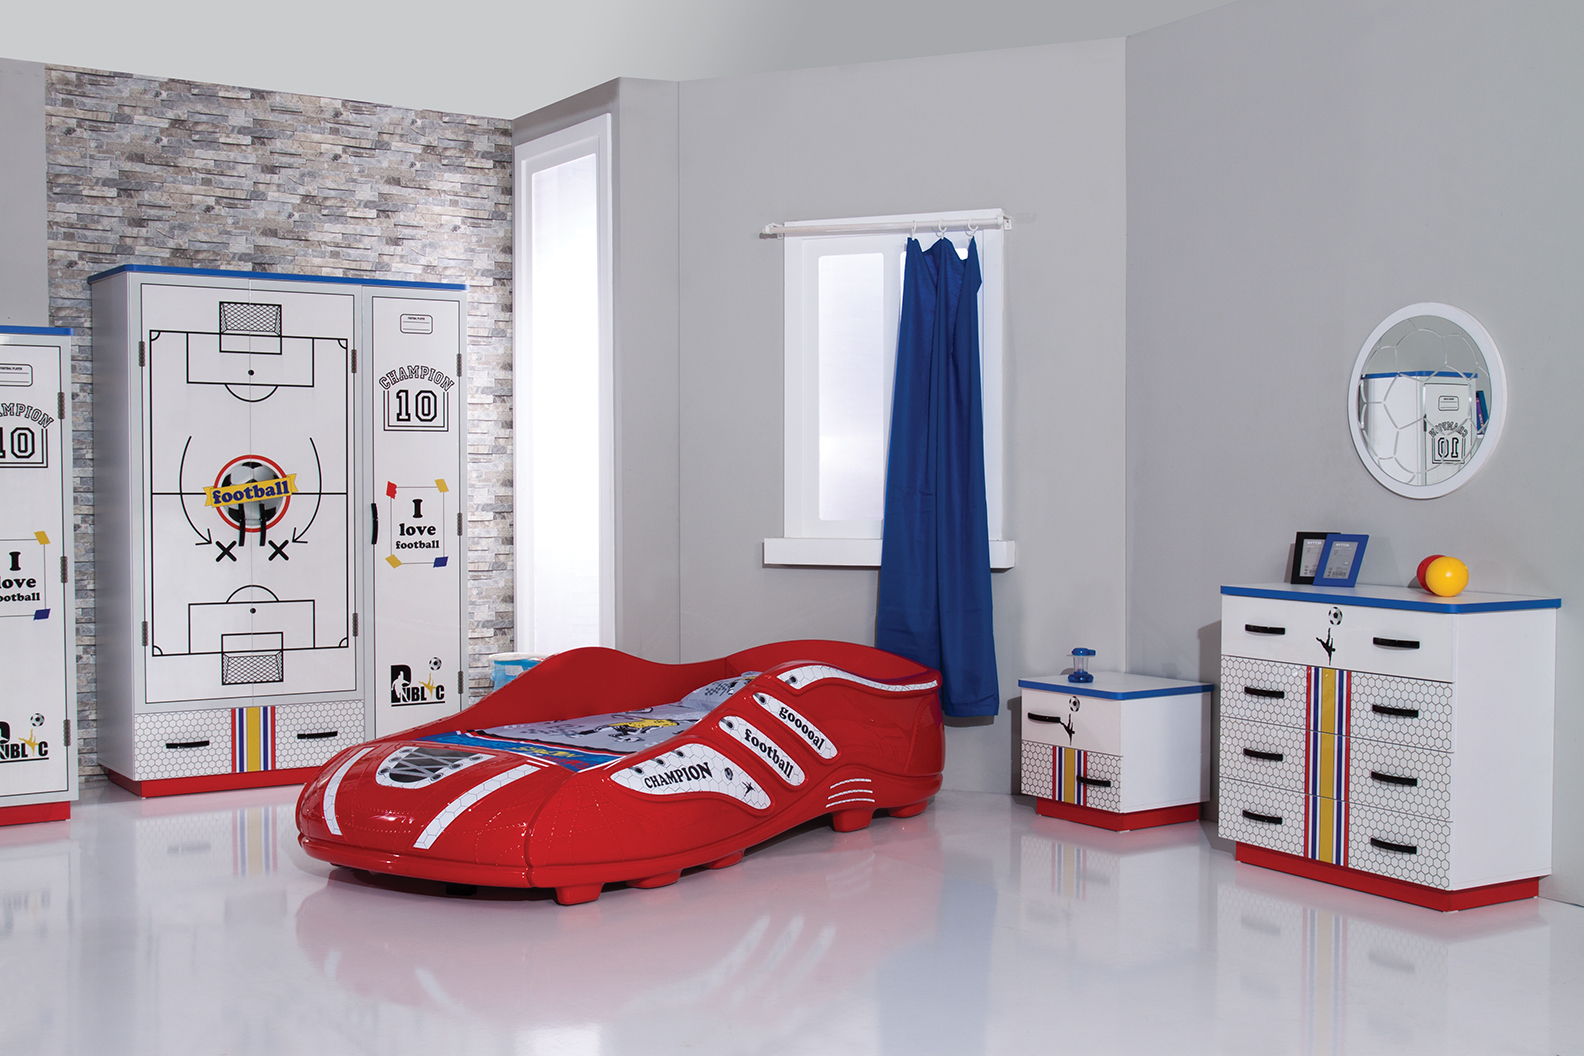 kinderzimmer fussballzimmer wohnideen. Black Bedroom Furniture Sets. Home Design Ideas